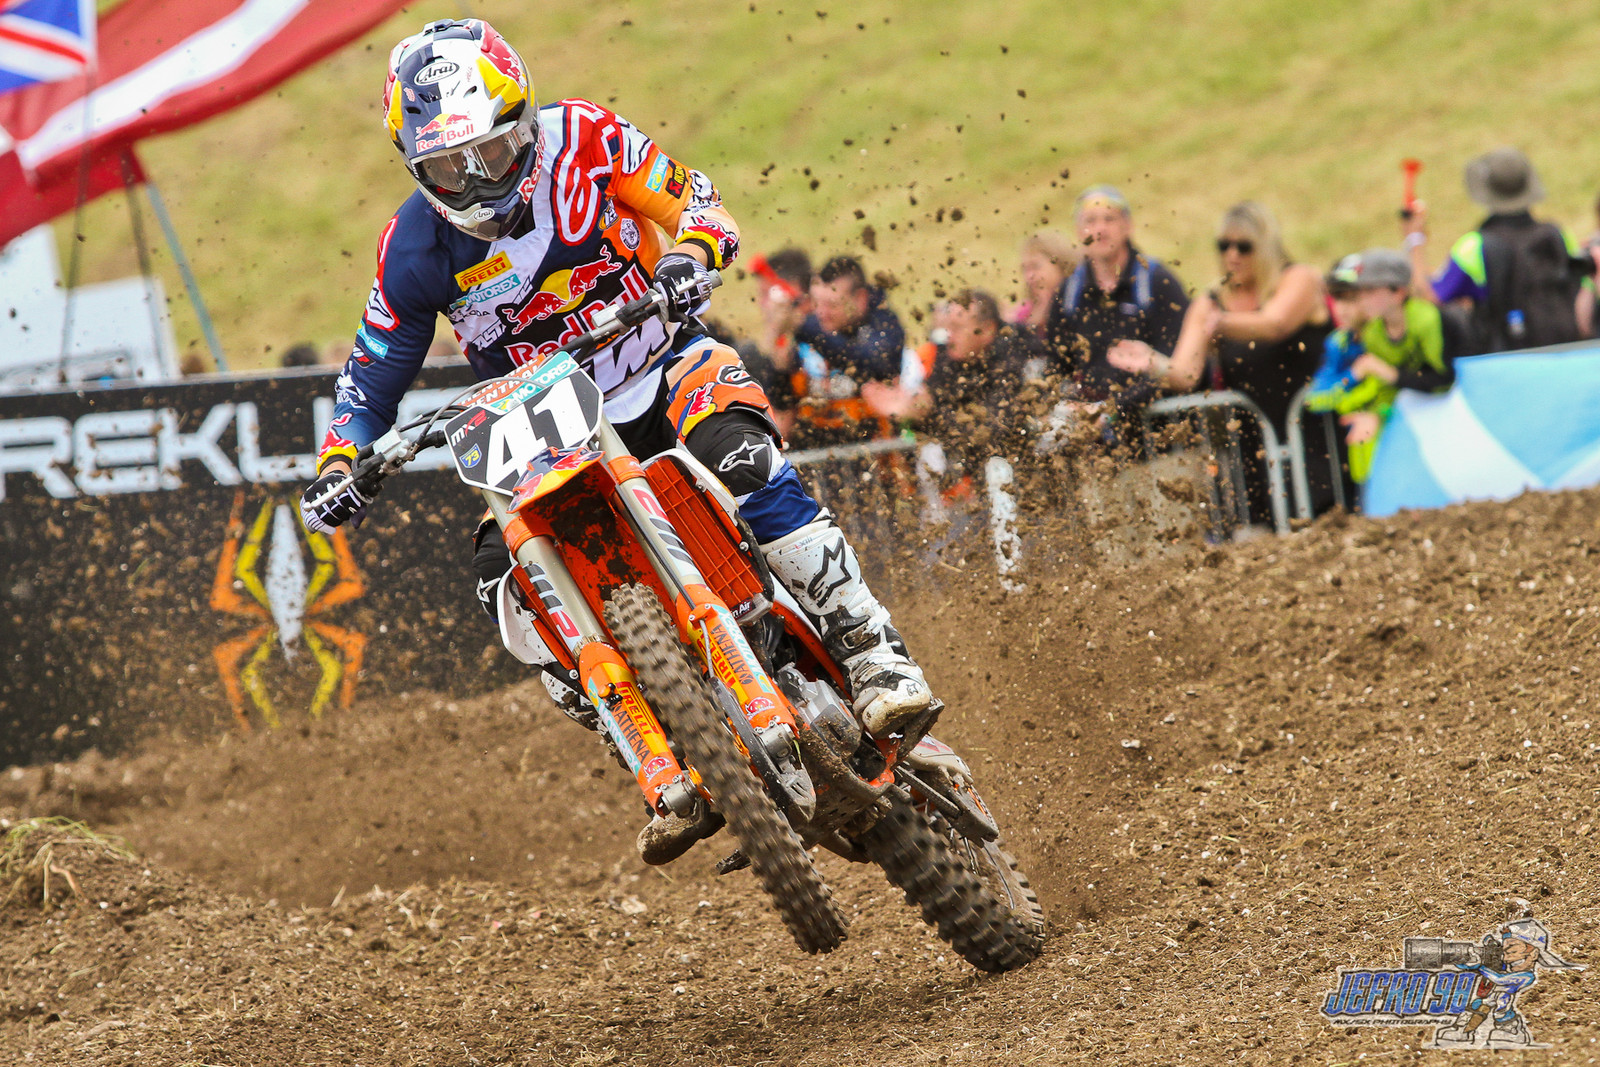 Pauls Jonass - Photo Gallery: MXGP of Great Britain - Motocross Pictures - Vital MX